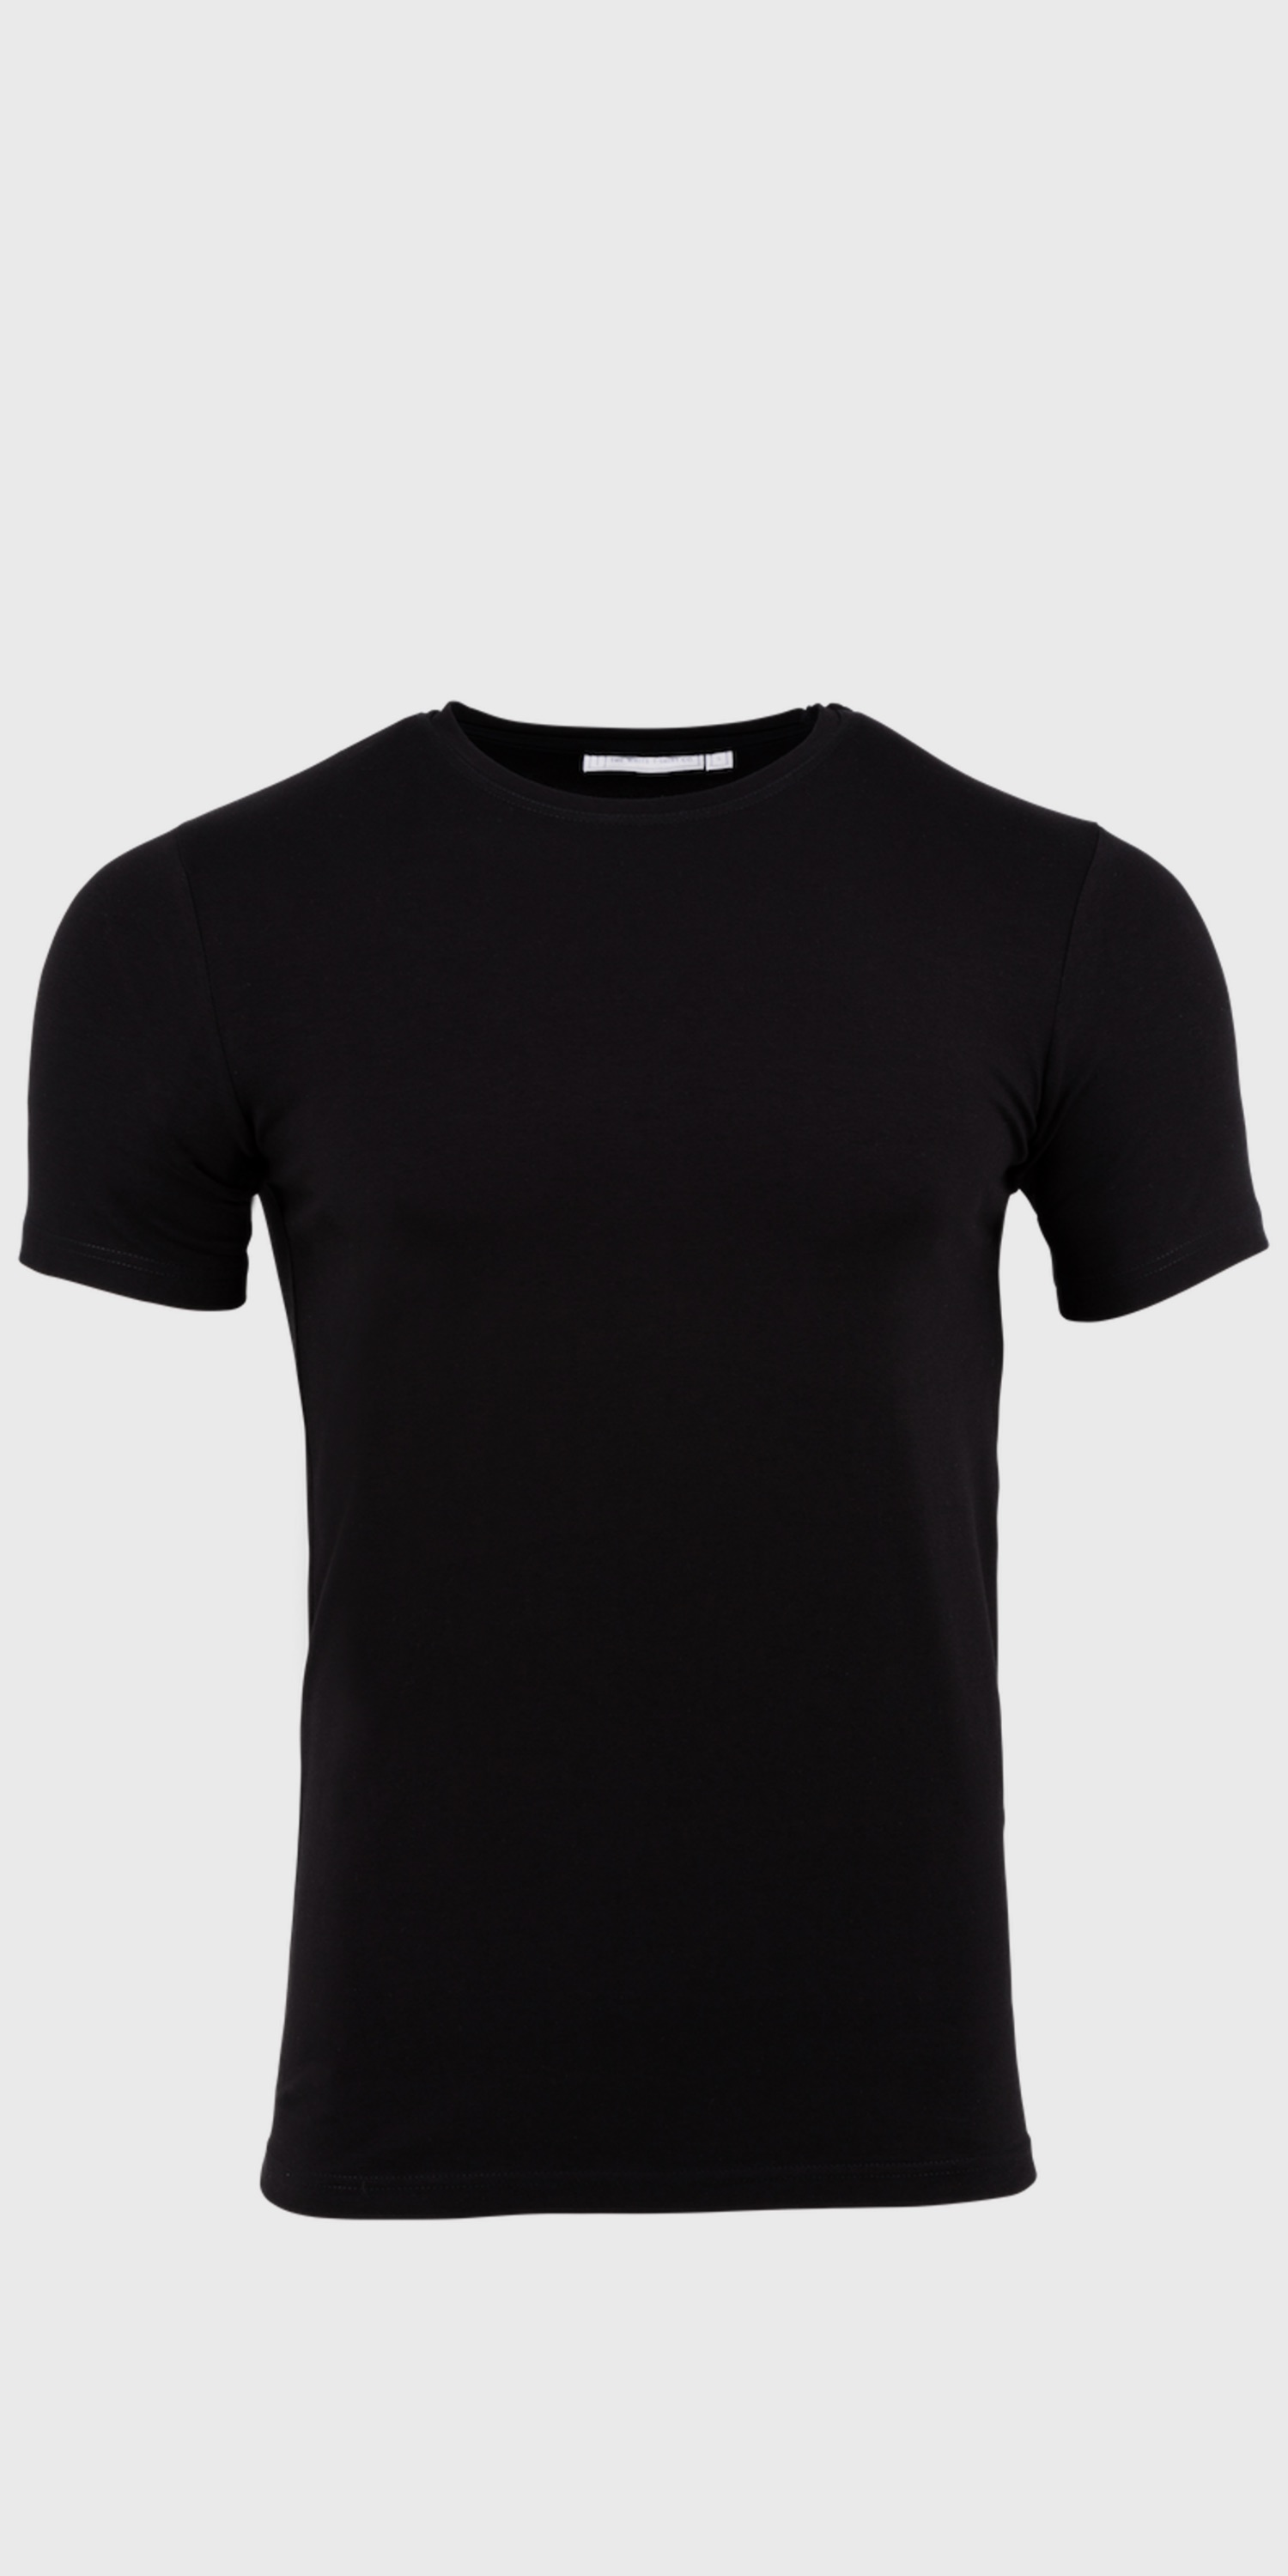 men's quality black t-shirt